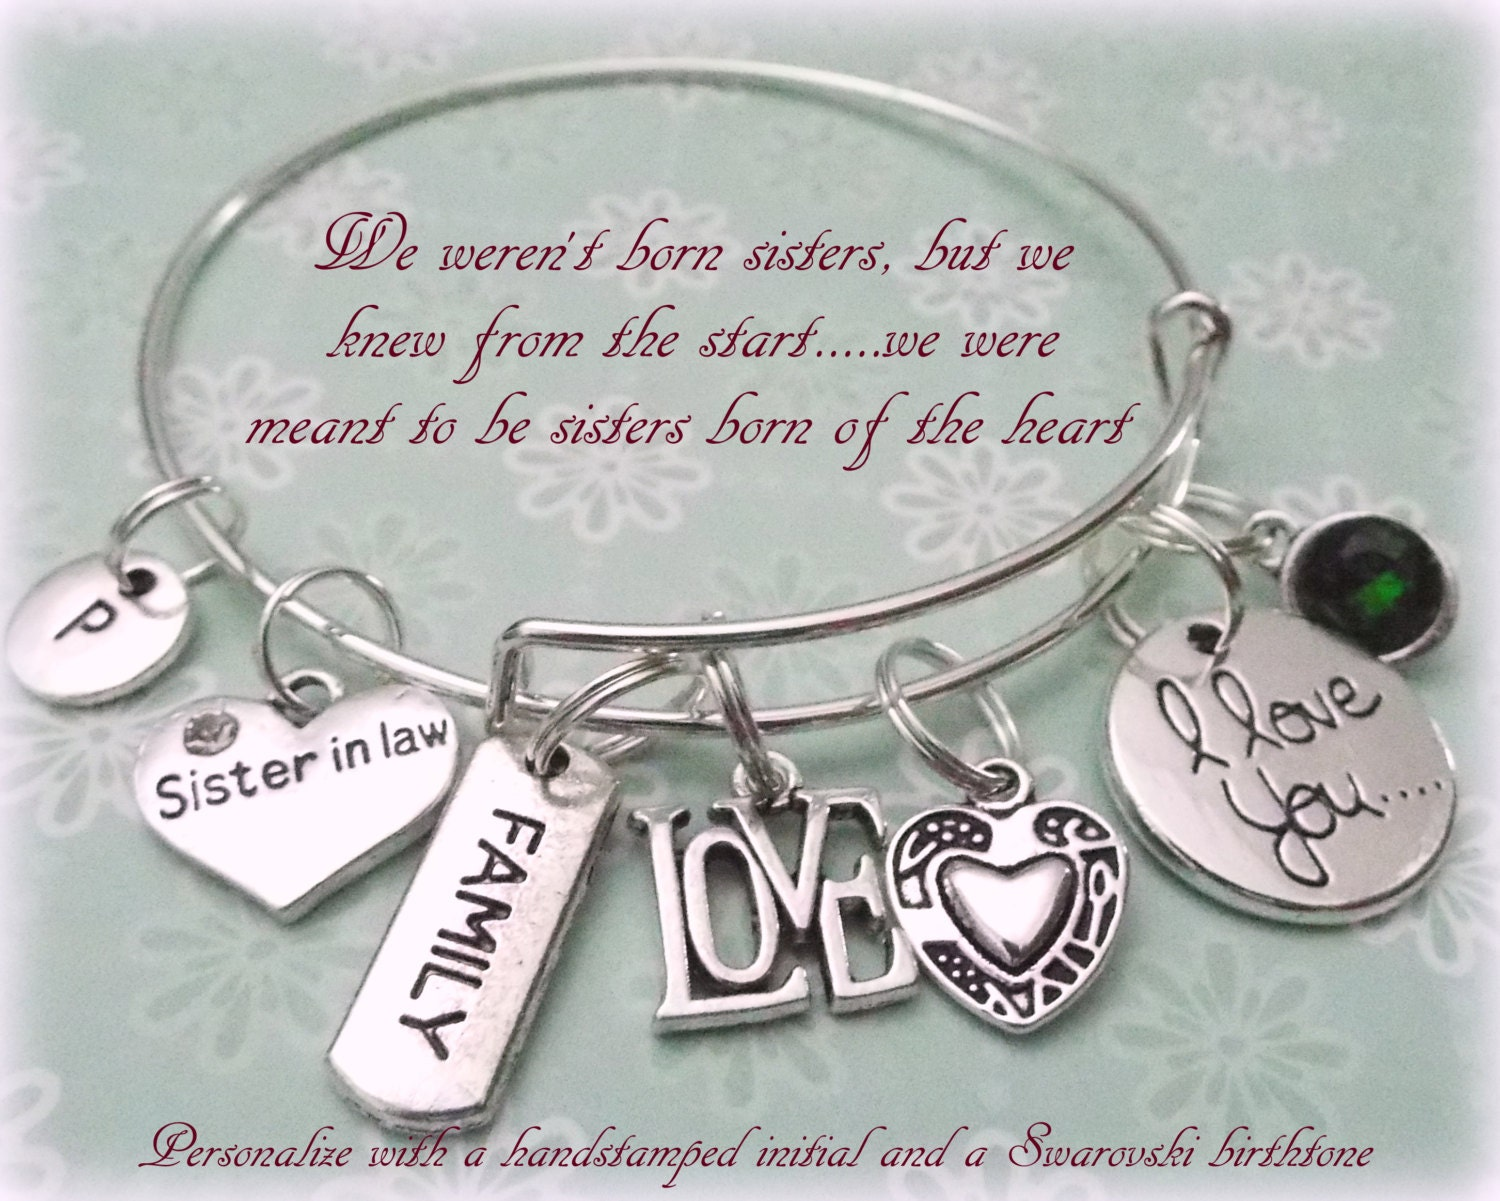 Sister In Law Charm Bracelet Gift For Sister In Law Wedding Gift